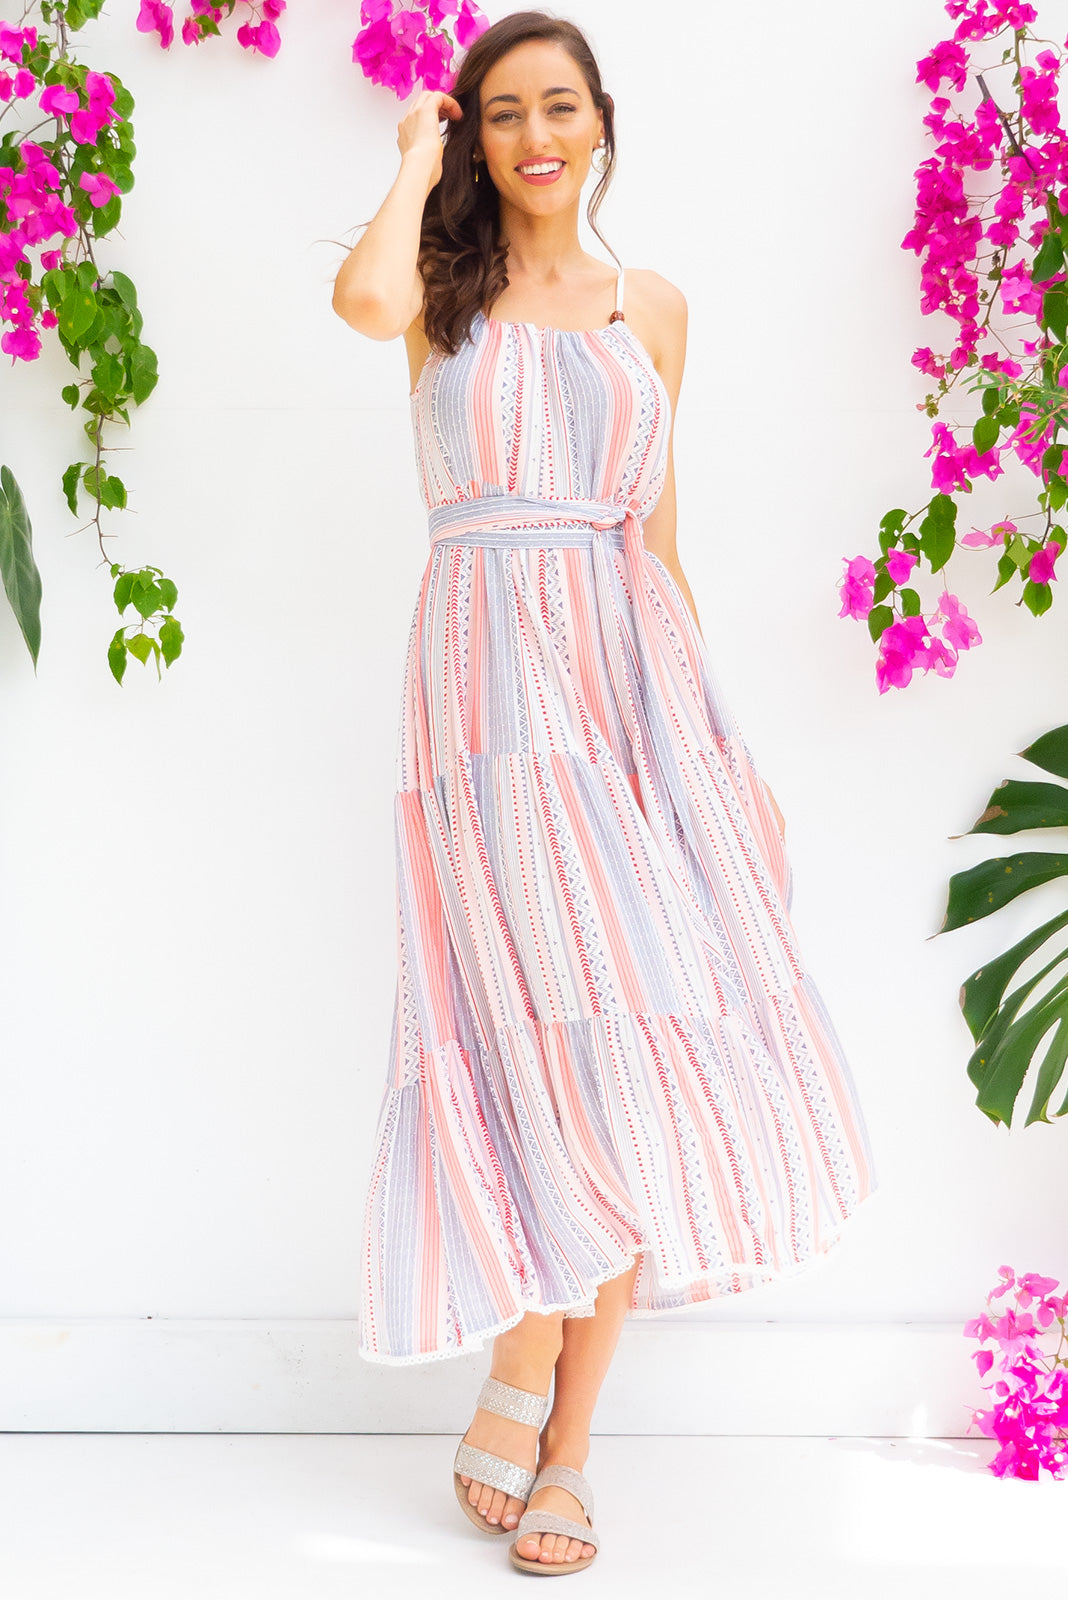 Lulu Loves Cool Stripe Maxi length crinkle rayon tiered dress with a adjustable neckline, side pockets in a gorgeous pink, blue and white stripe